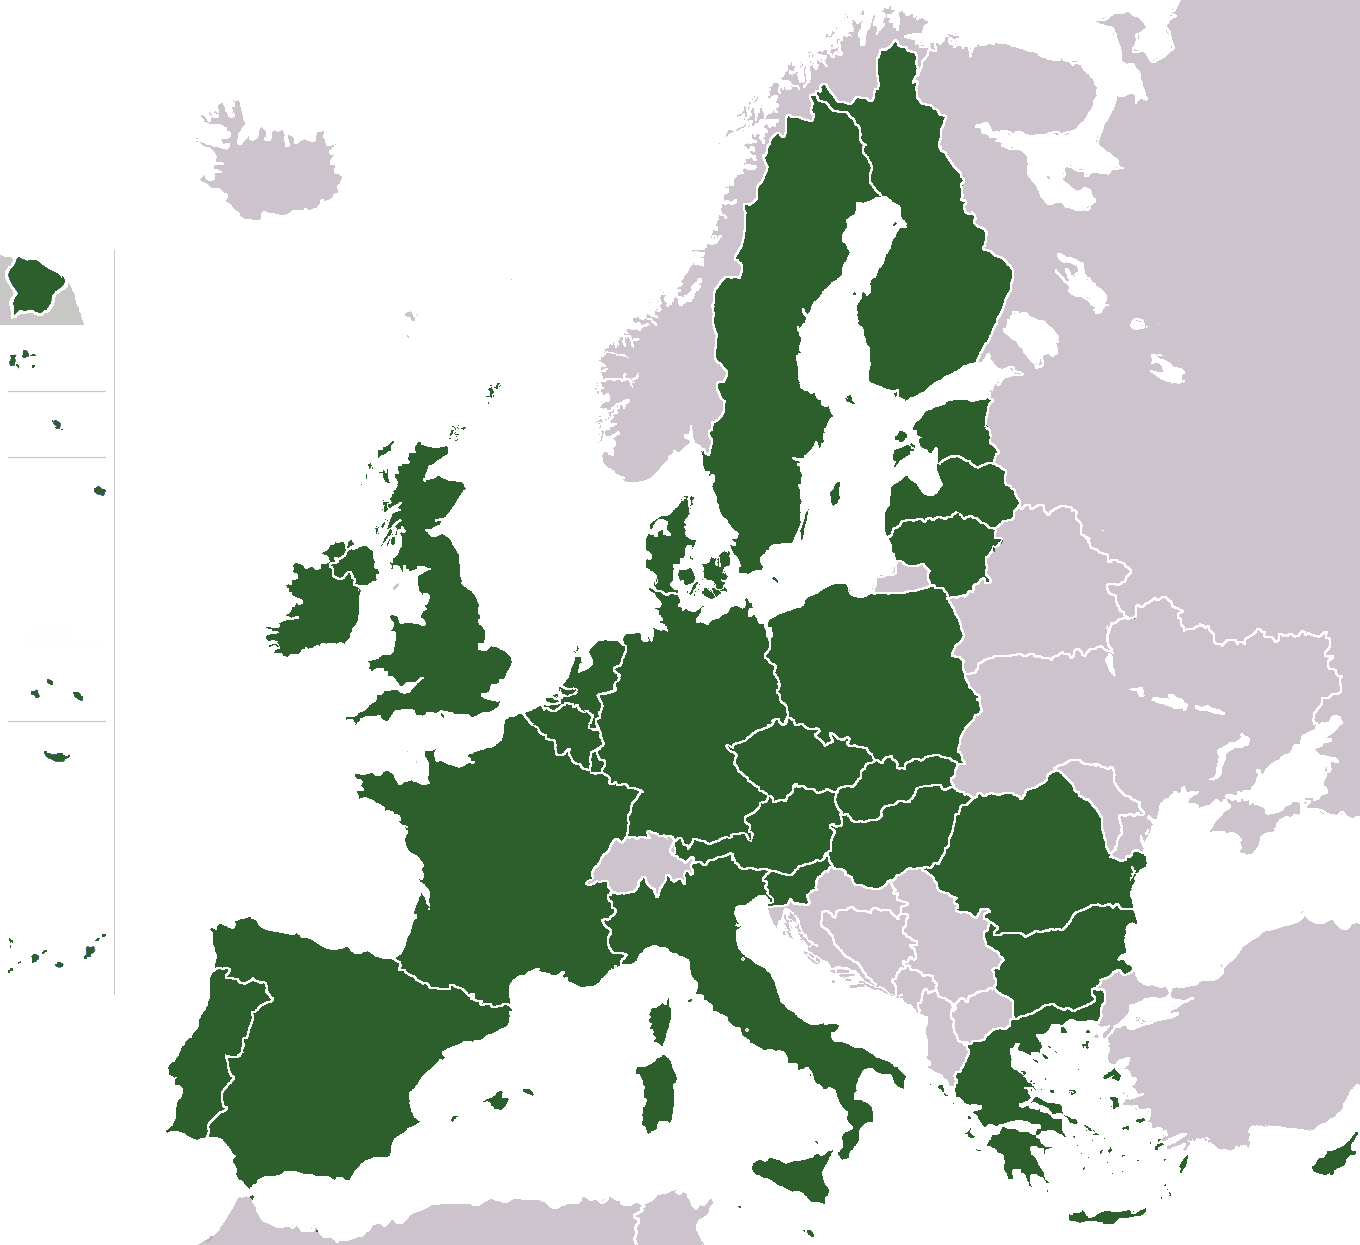 Europe Map.European Union Maps